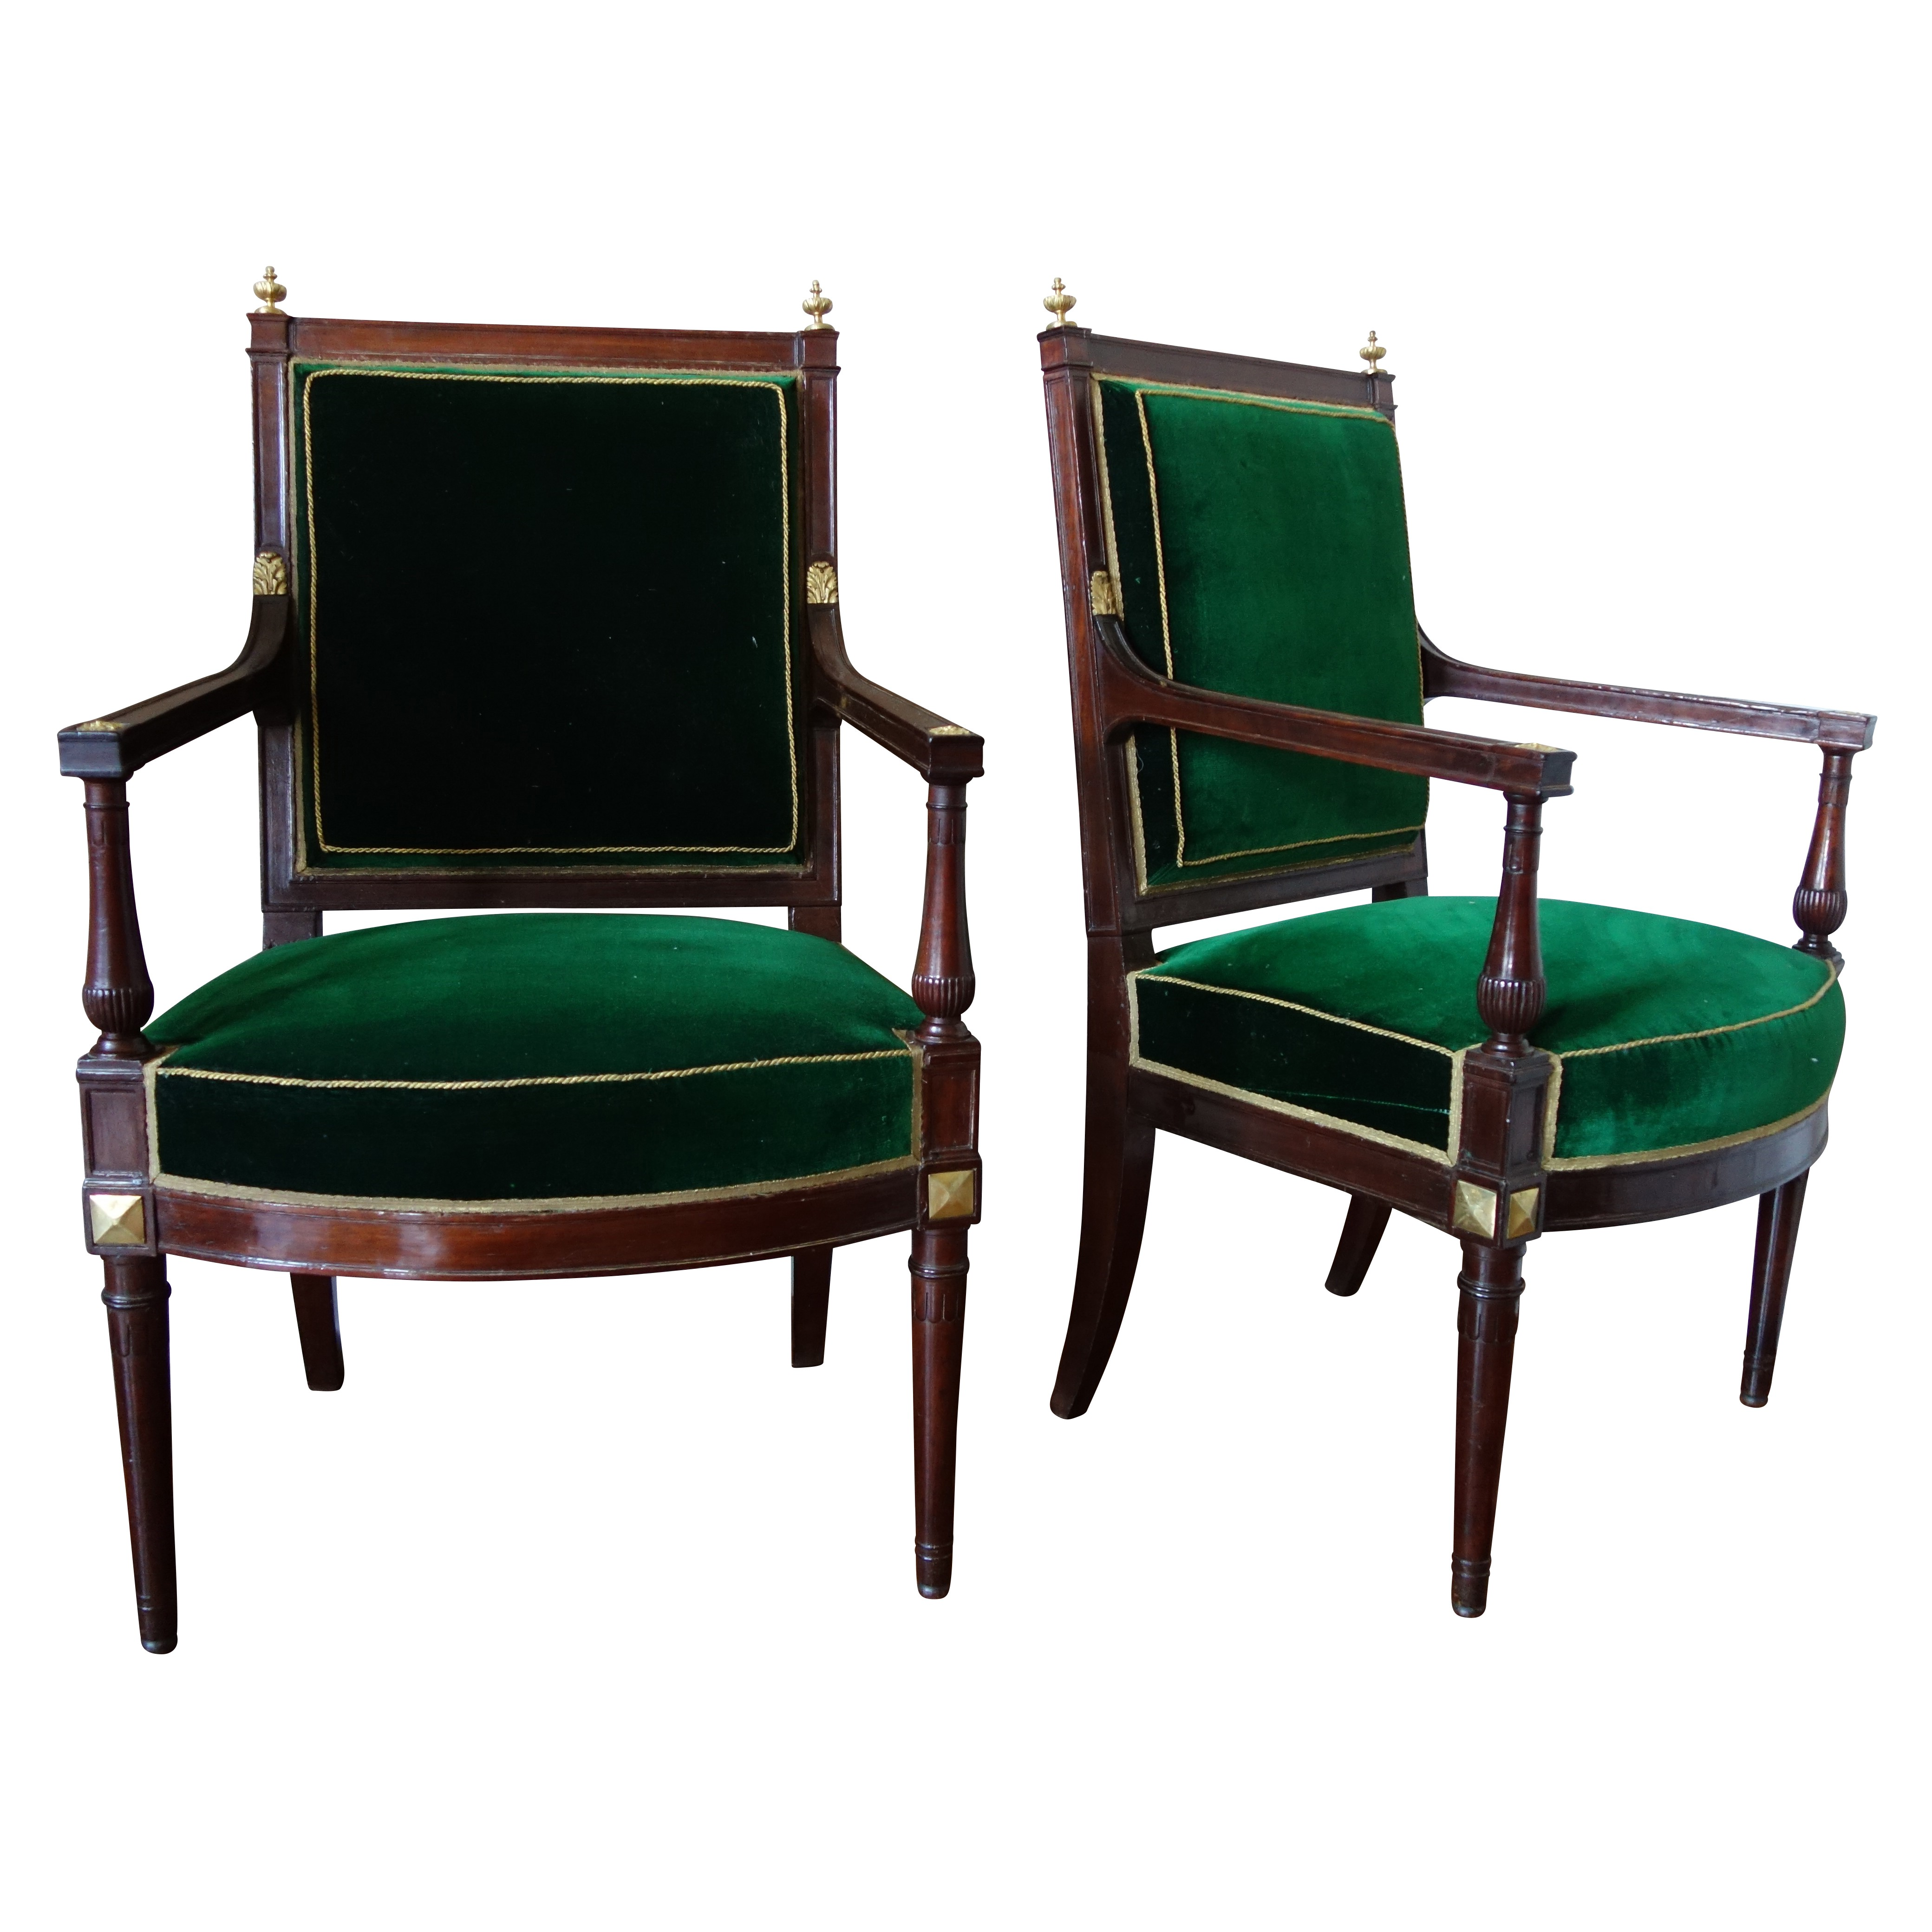 Pair of Directoire mahogany and ormolu armchairs, late 18th century circa 1790 attributed to Jacob